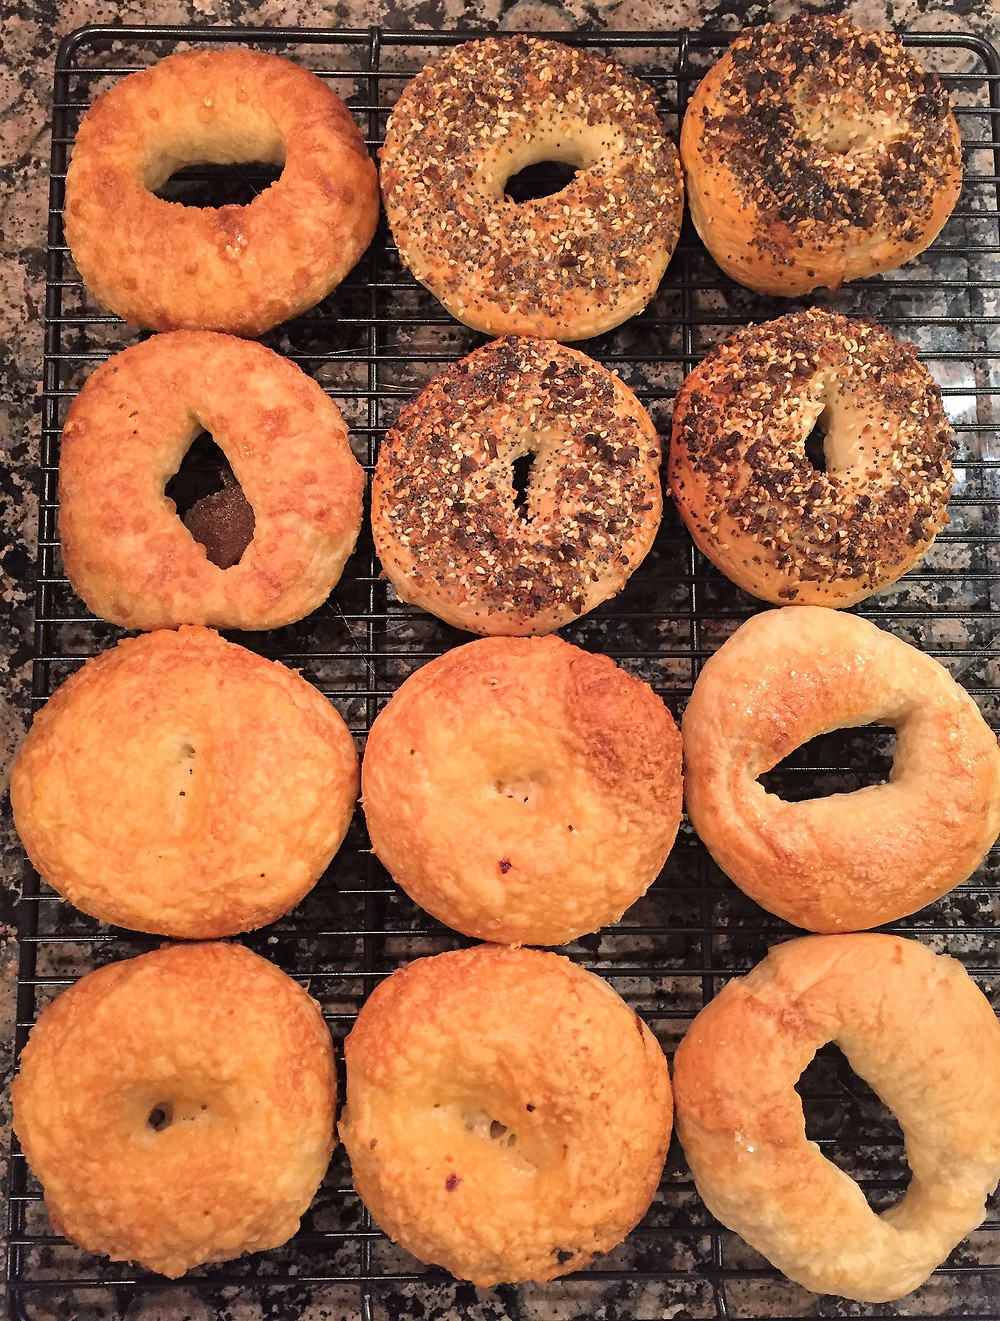 Boiled and Baked Homemade Bagels